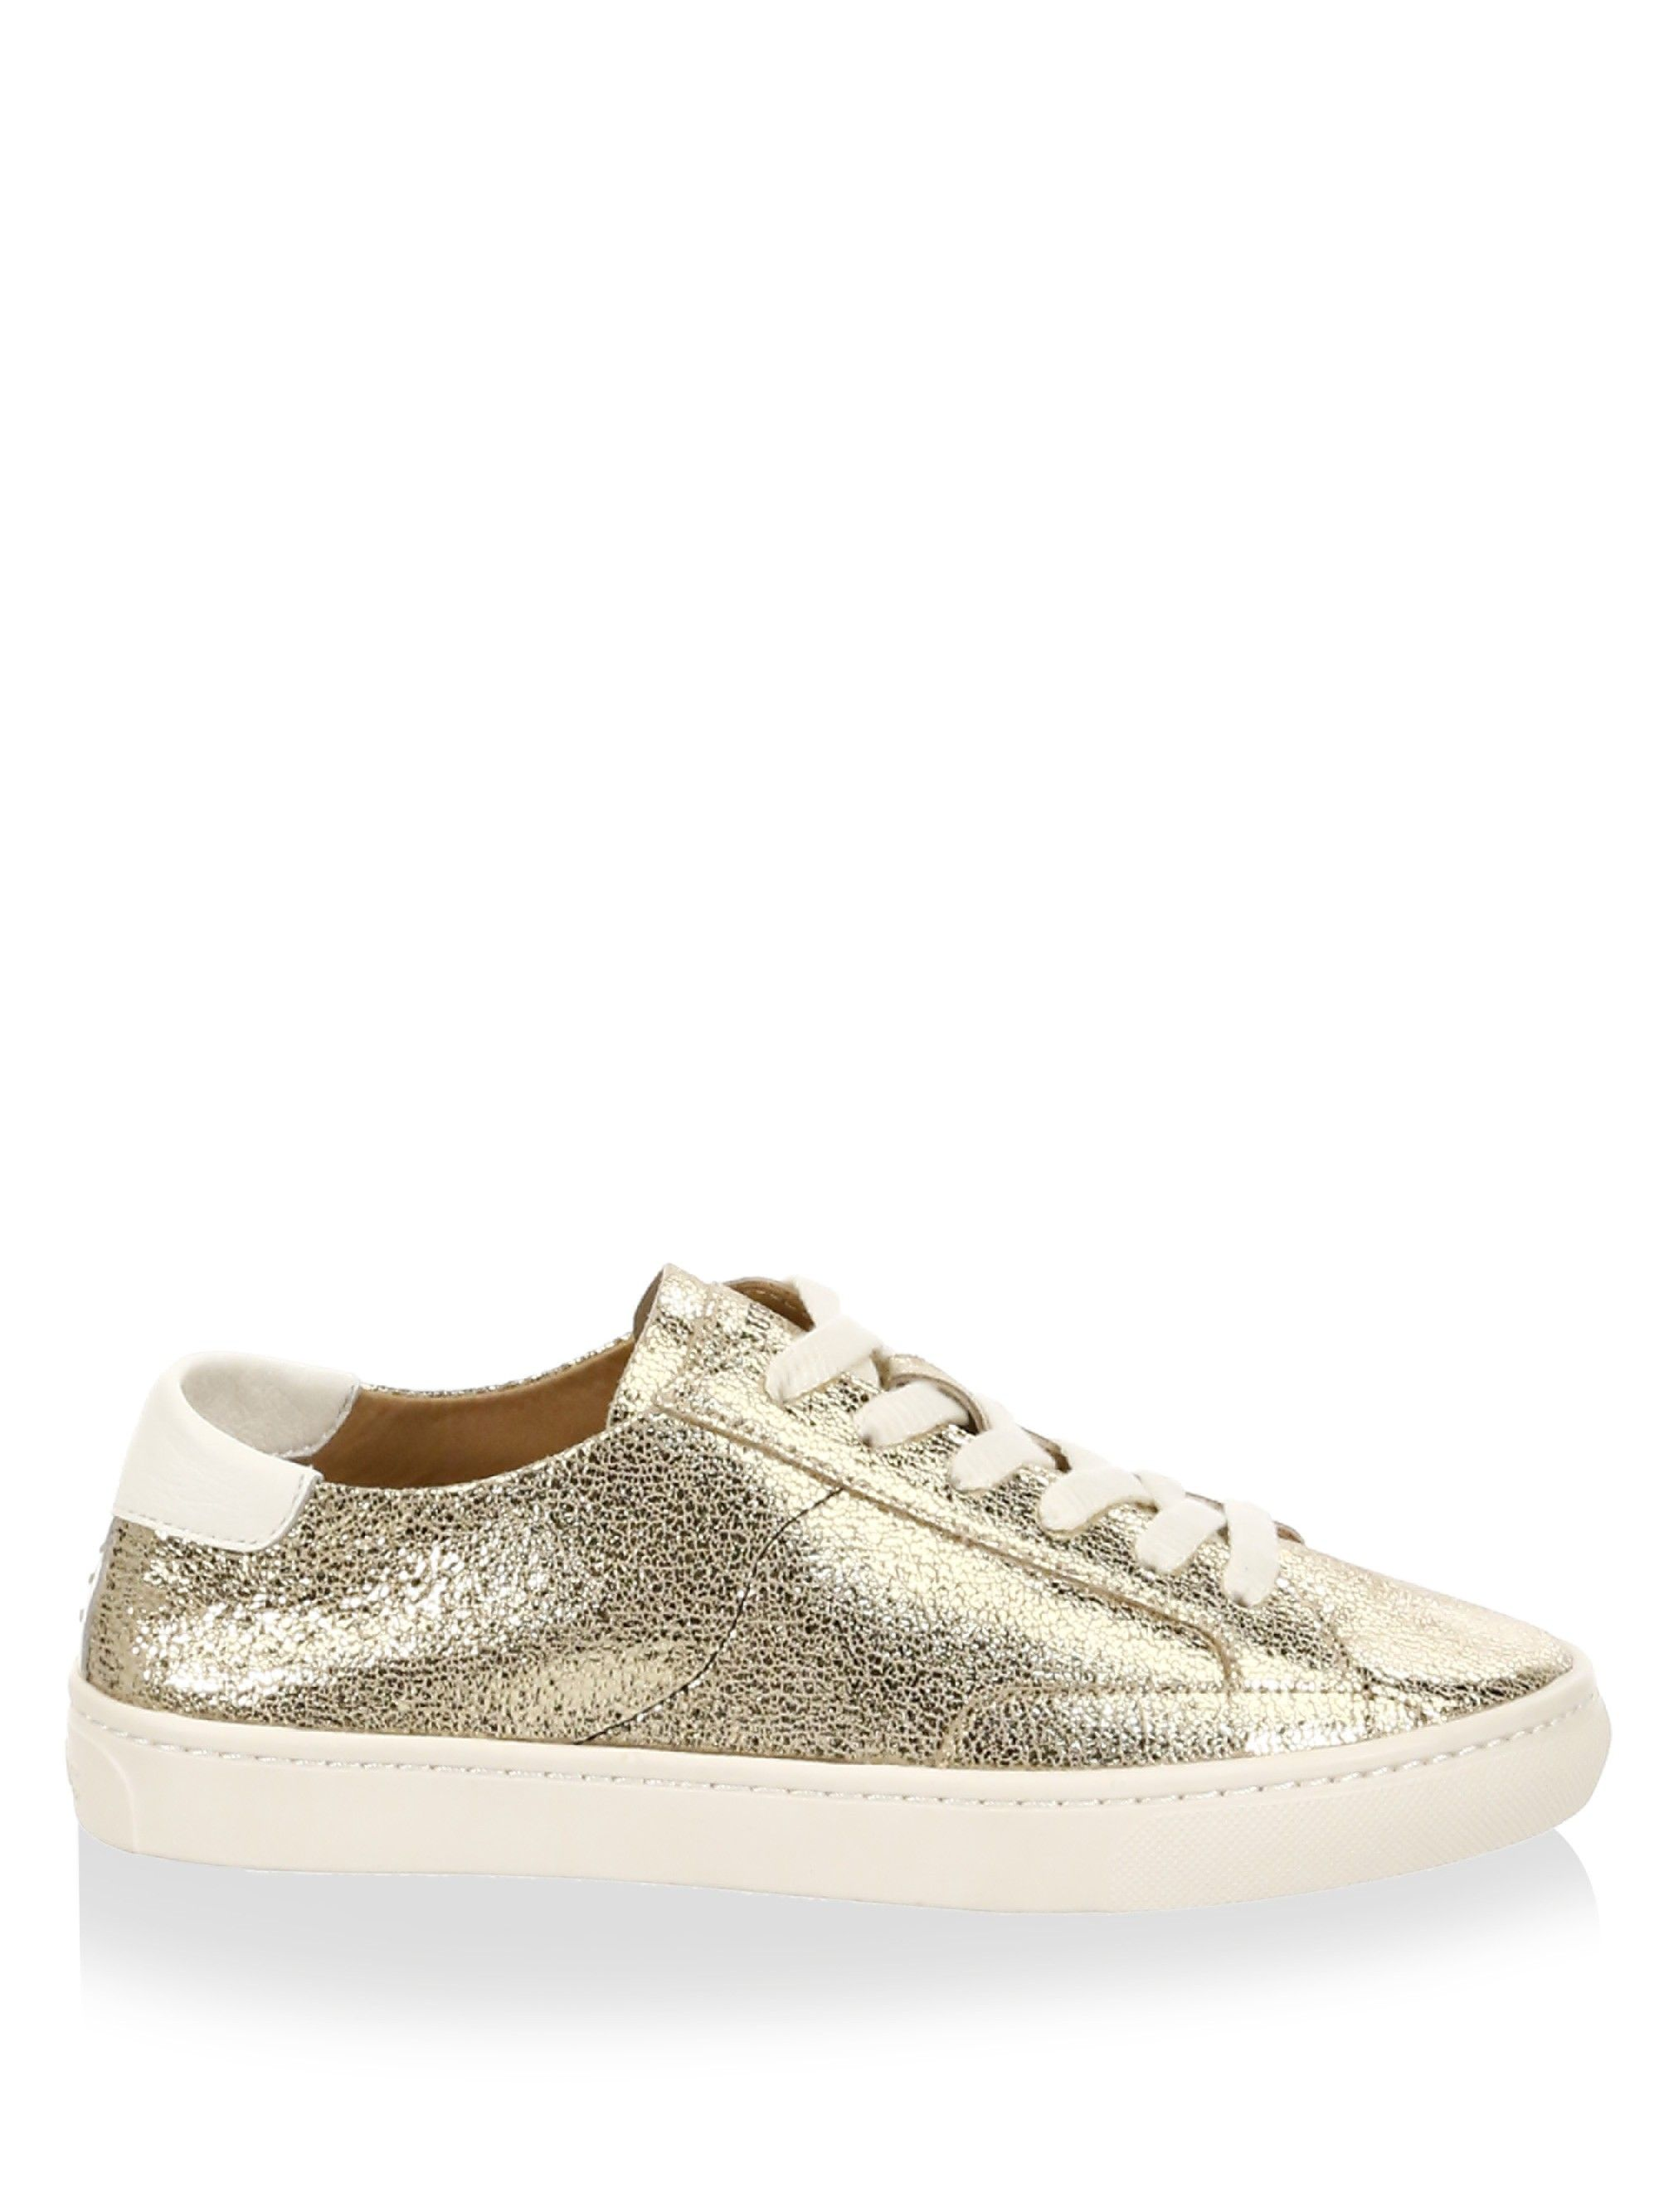 Soludos Metallic Lace-Up Leather Sneakers lsXcwQ